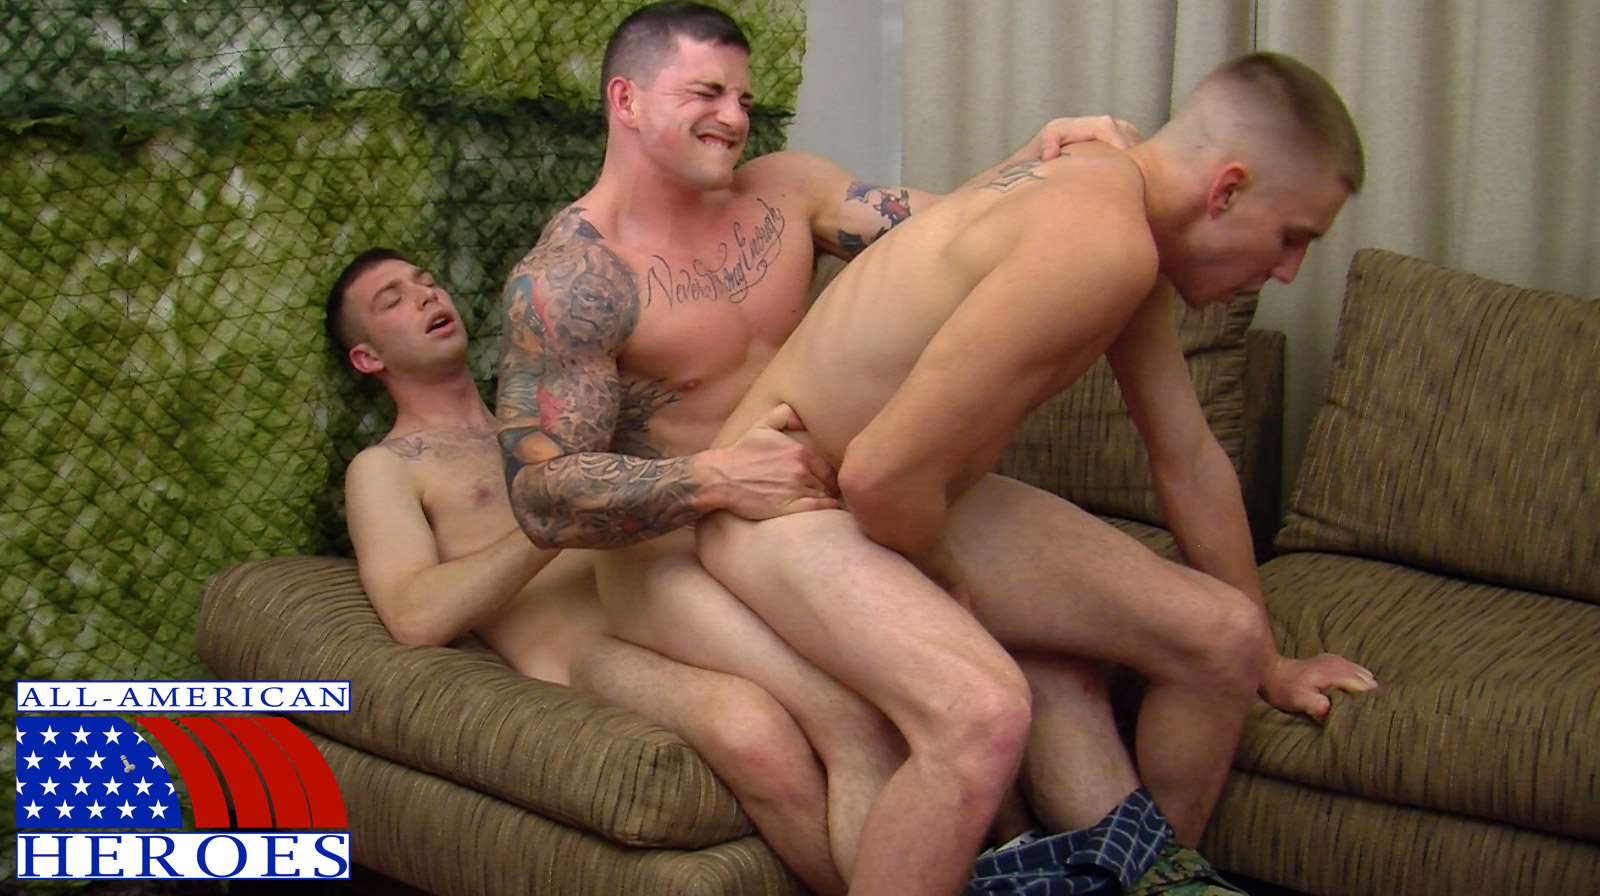 American naked soldiers gays with very big 6